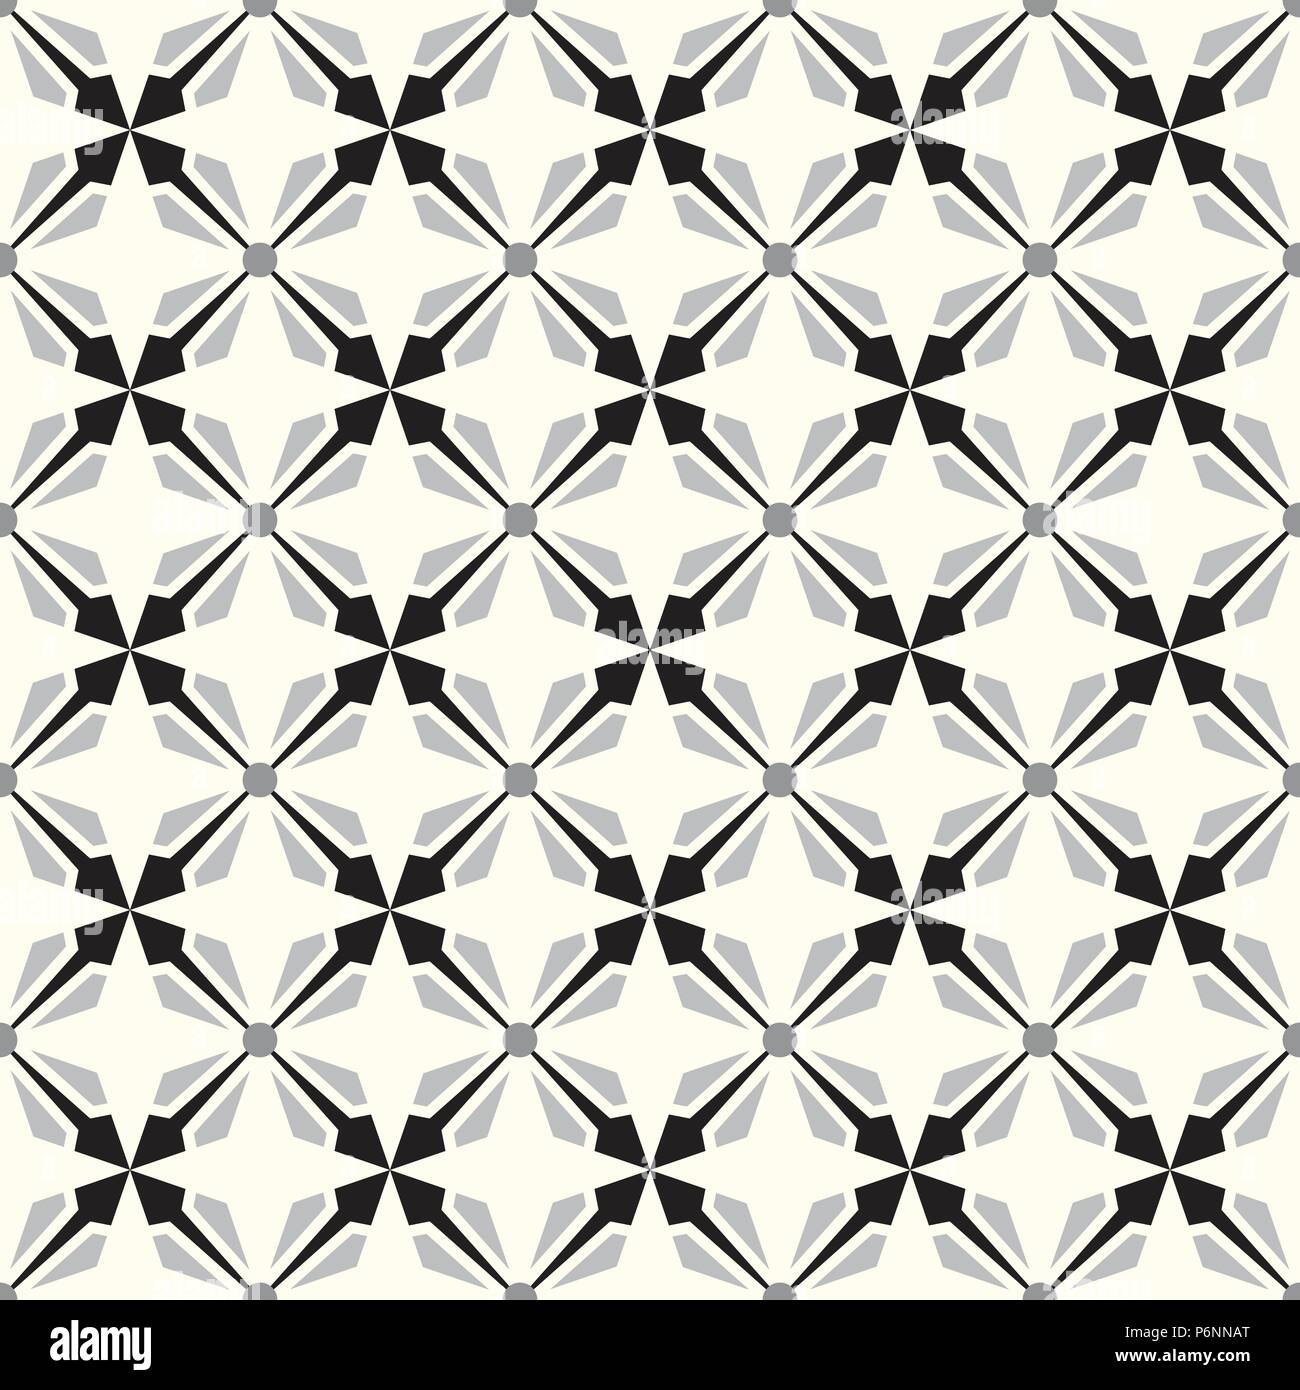 Black abstract arrow and circle in rectangle shape seamless pattern. Modern pattern for graphic or abstract design. - Stock Vector